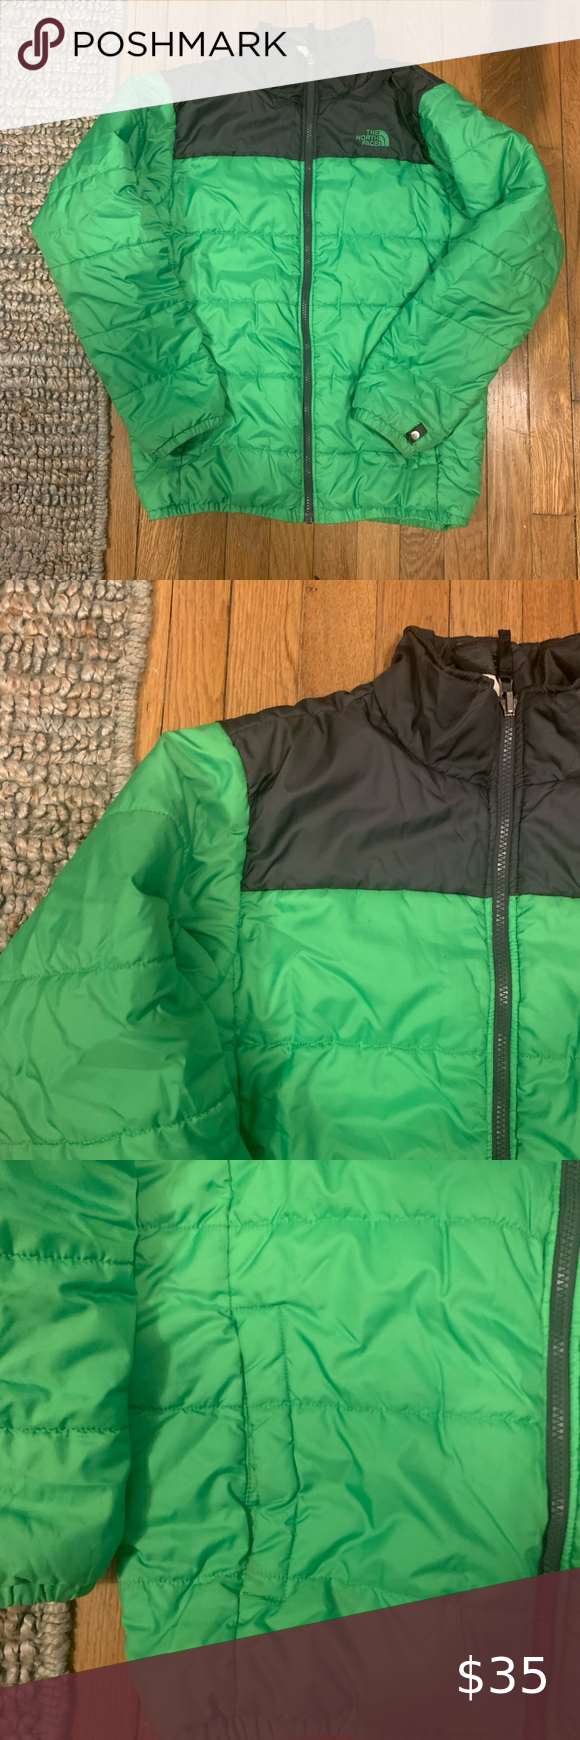 North Face Lime Green Puffer Jacket Green Puffer Jacket Grey Puffer Jacket Puffer Jacket North Face [ 1740 x 580 Pixel ]